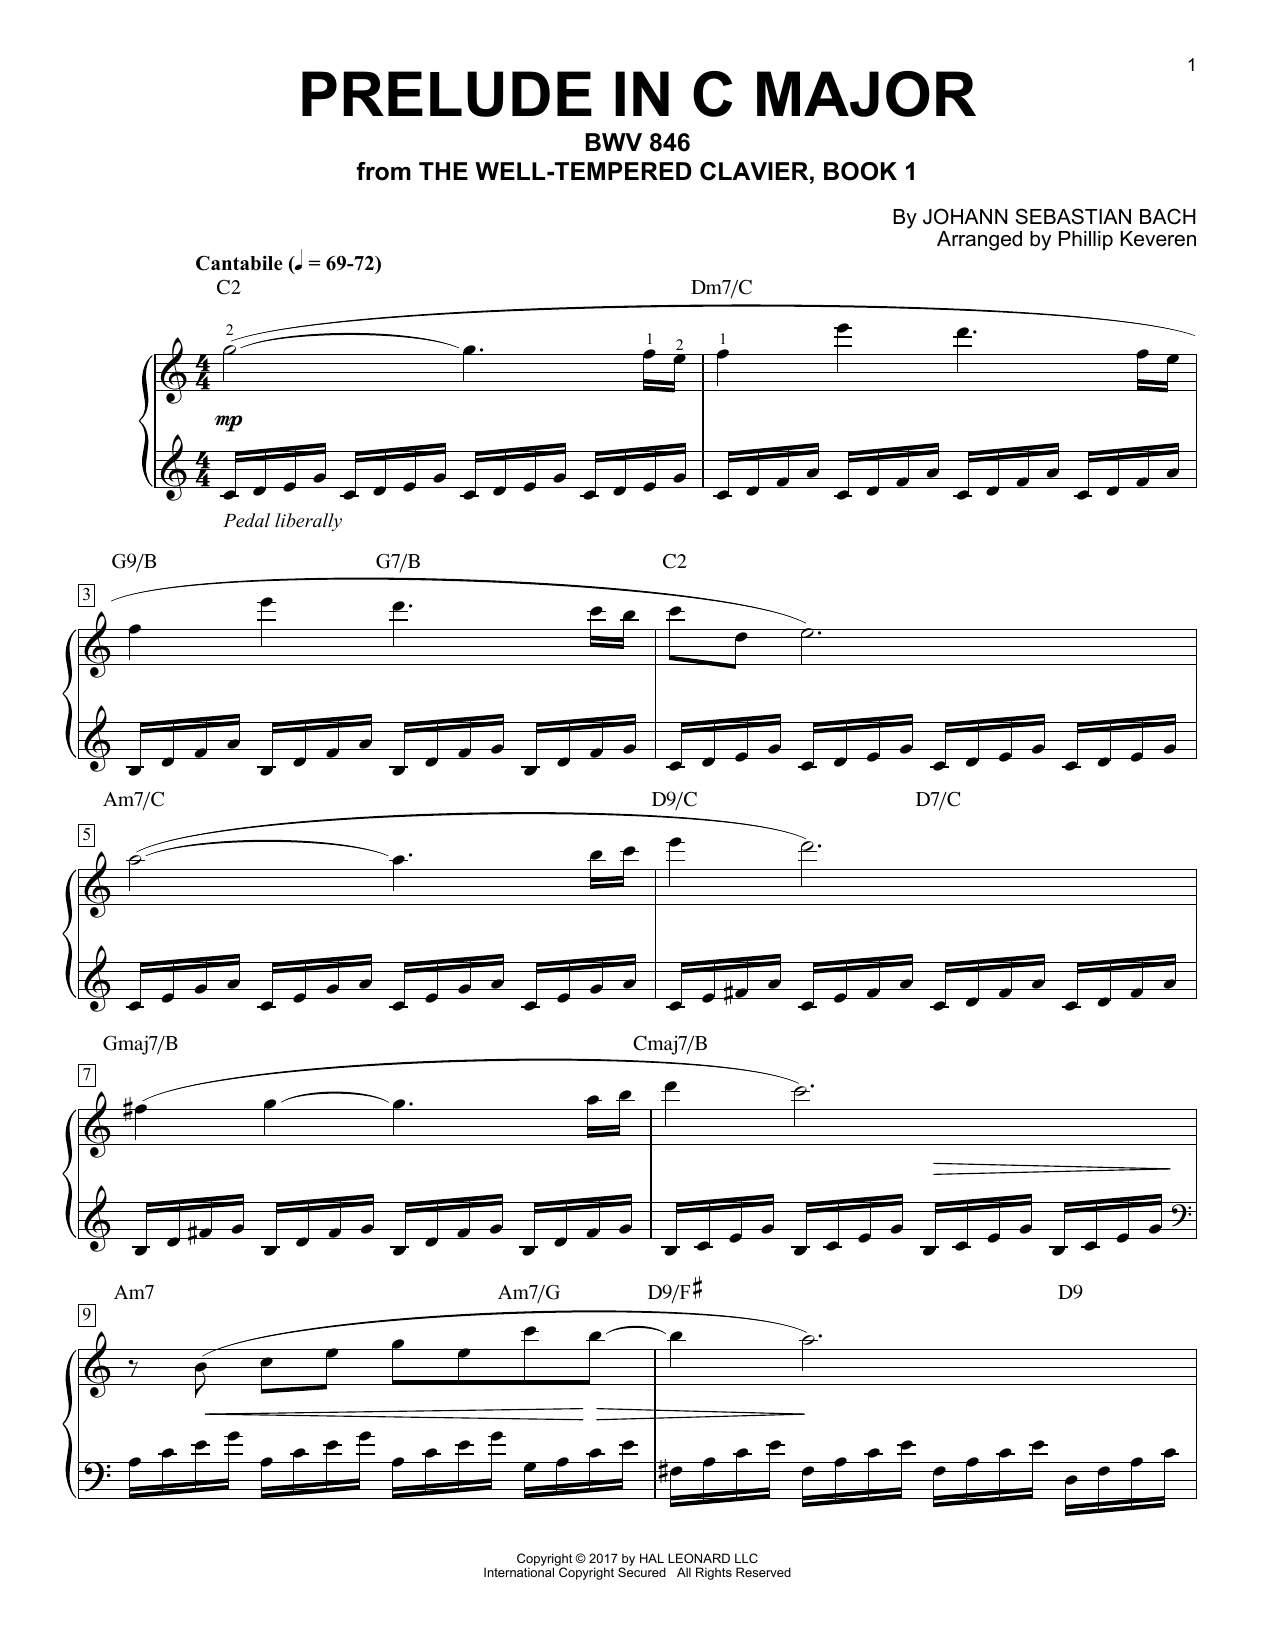 Johann Sebastian Bach Prelude In C Major, BWV 846 [Jazz version] (arr. Phillip Keveren) sheet music notes and chords. Download Printable PDF.